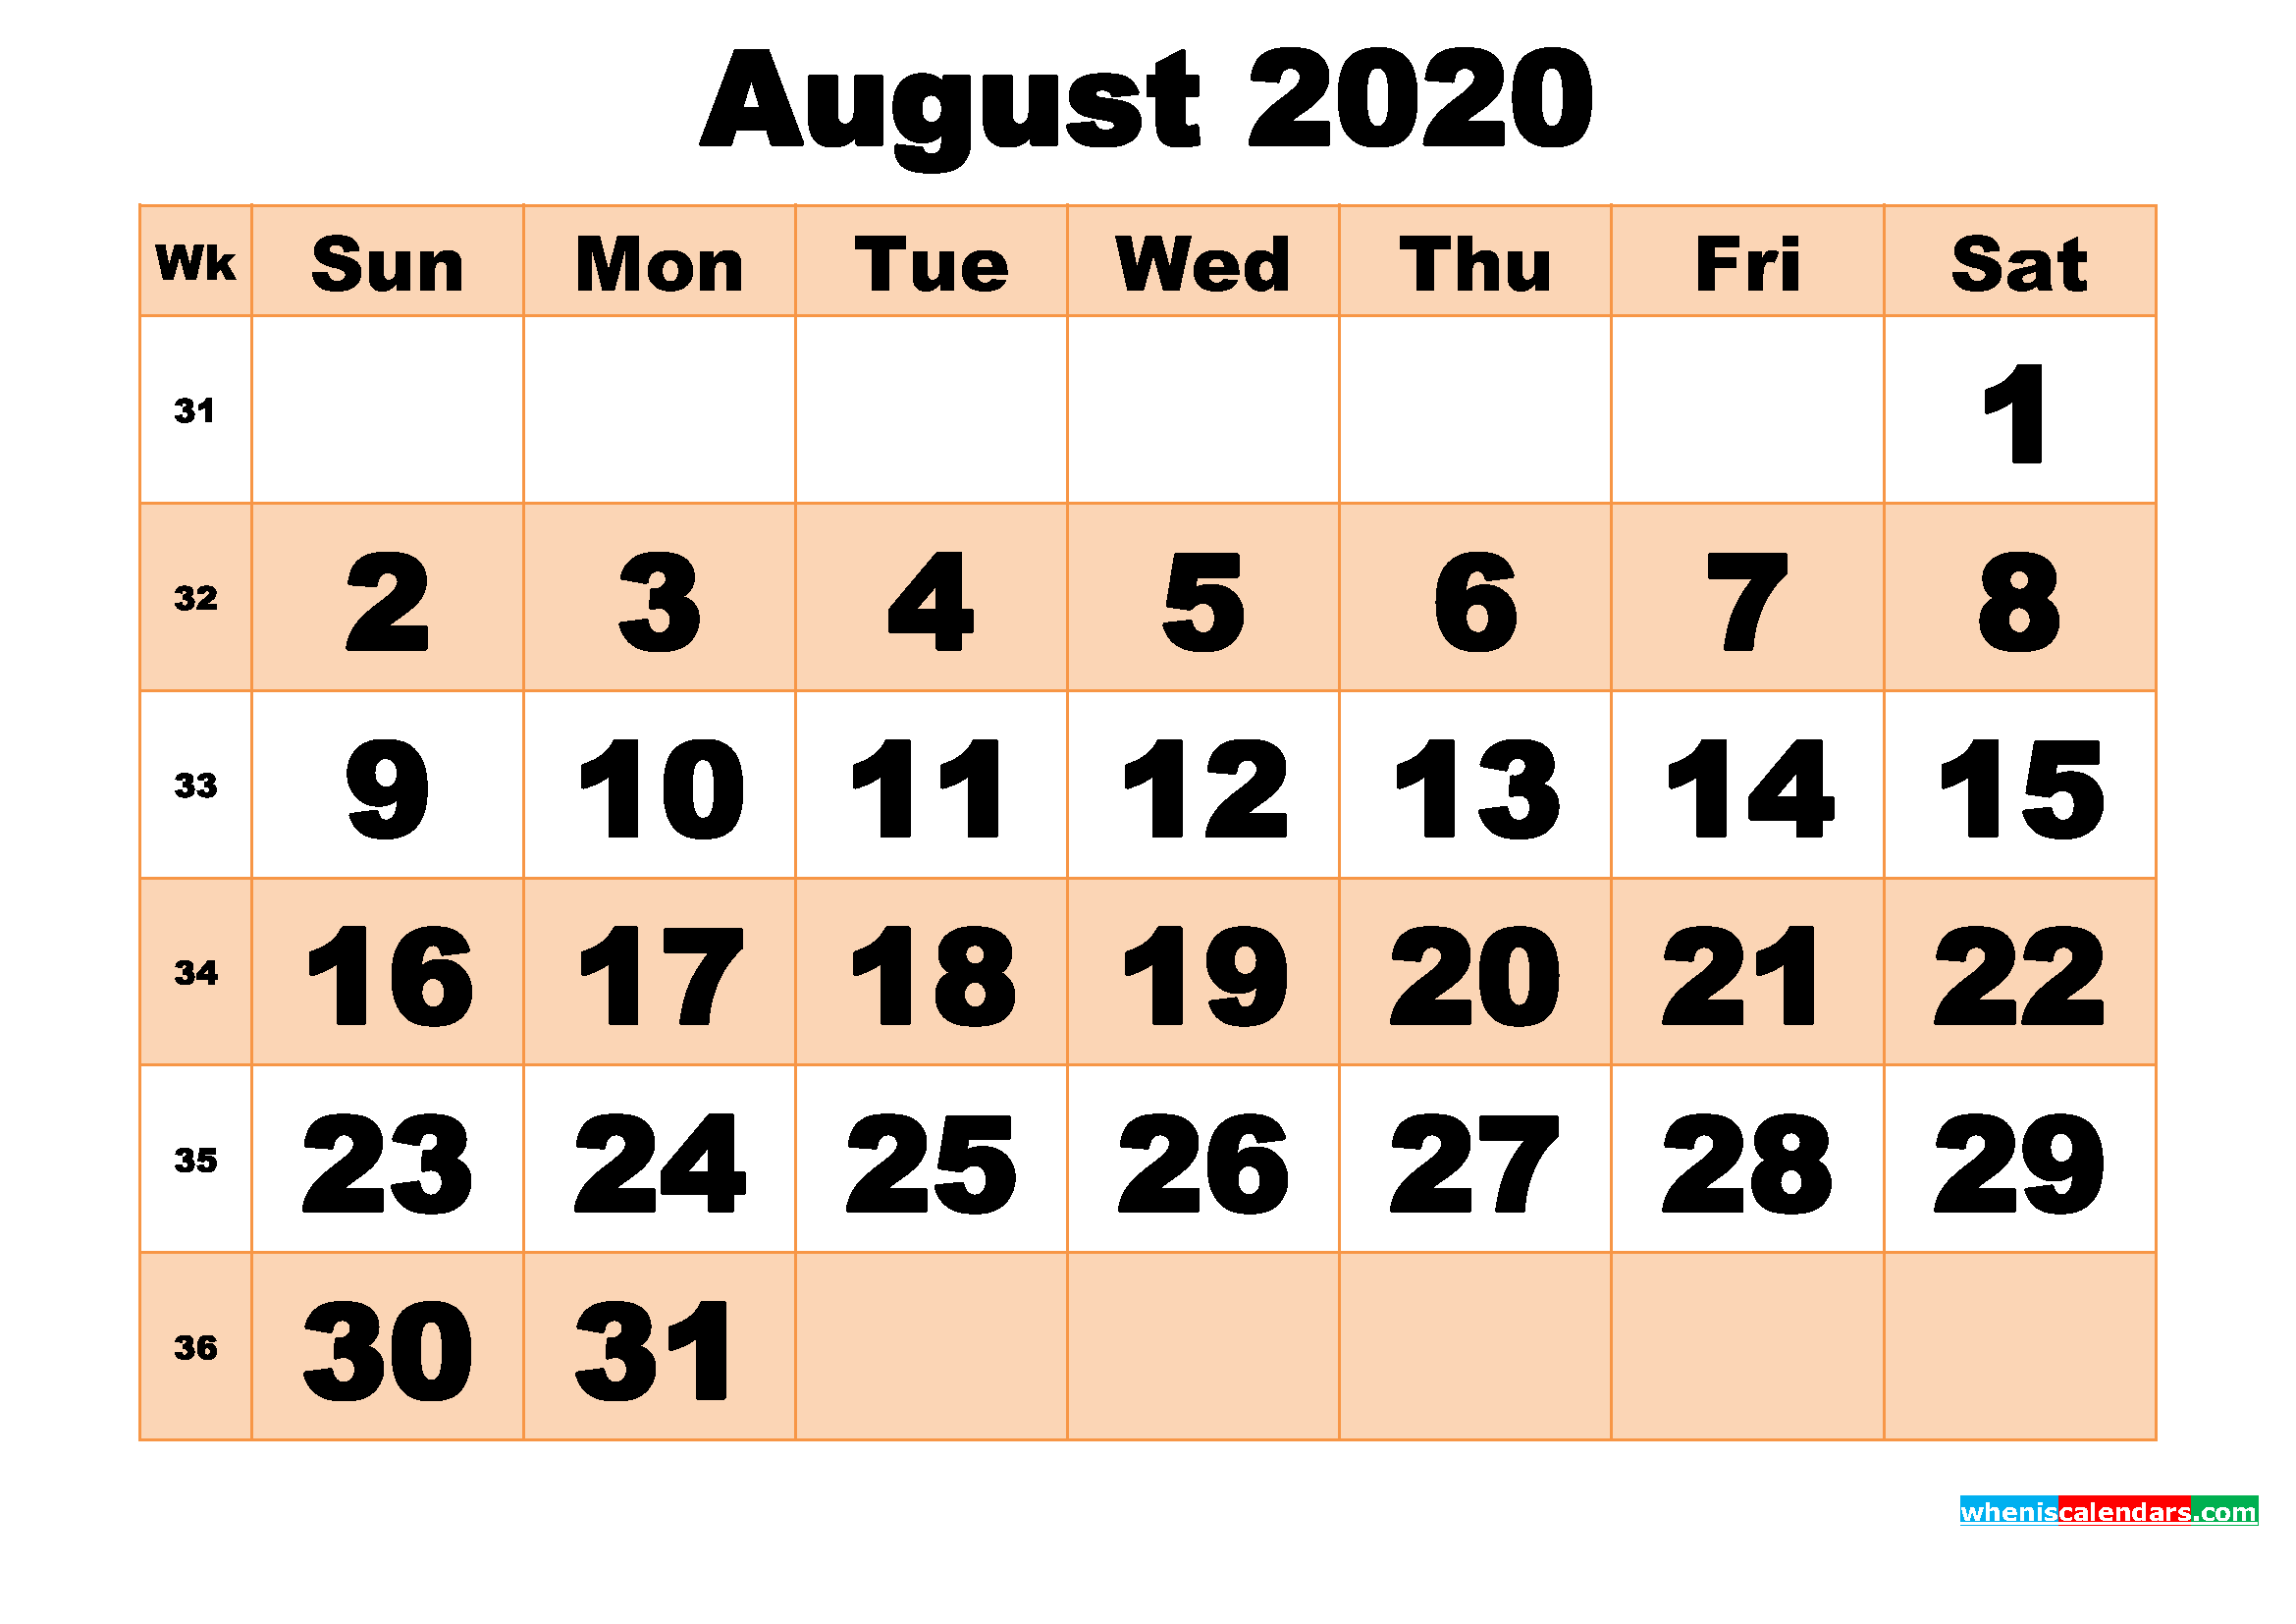 Free Printable August 2020 Calendar Template Word, PDF